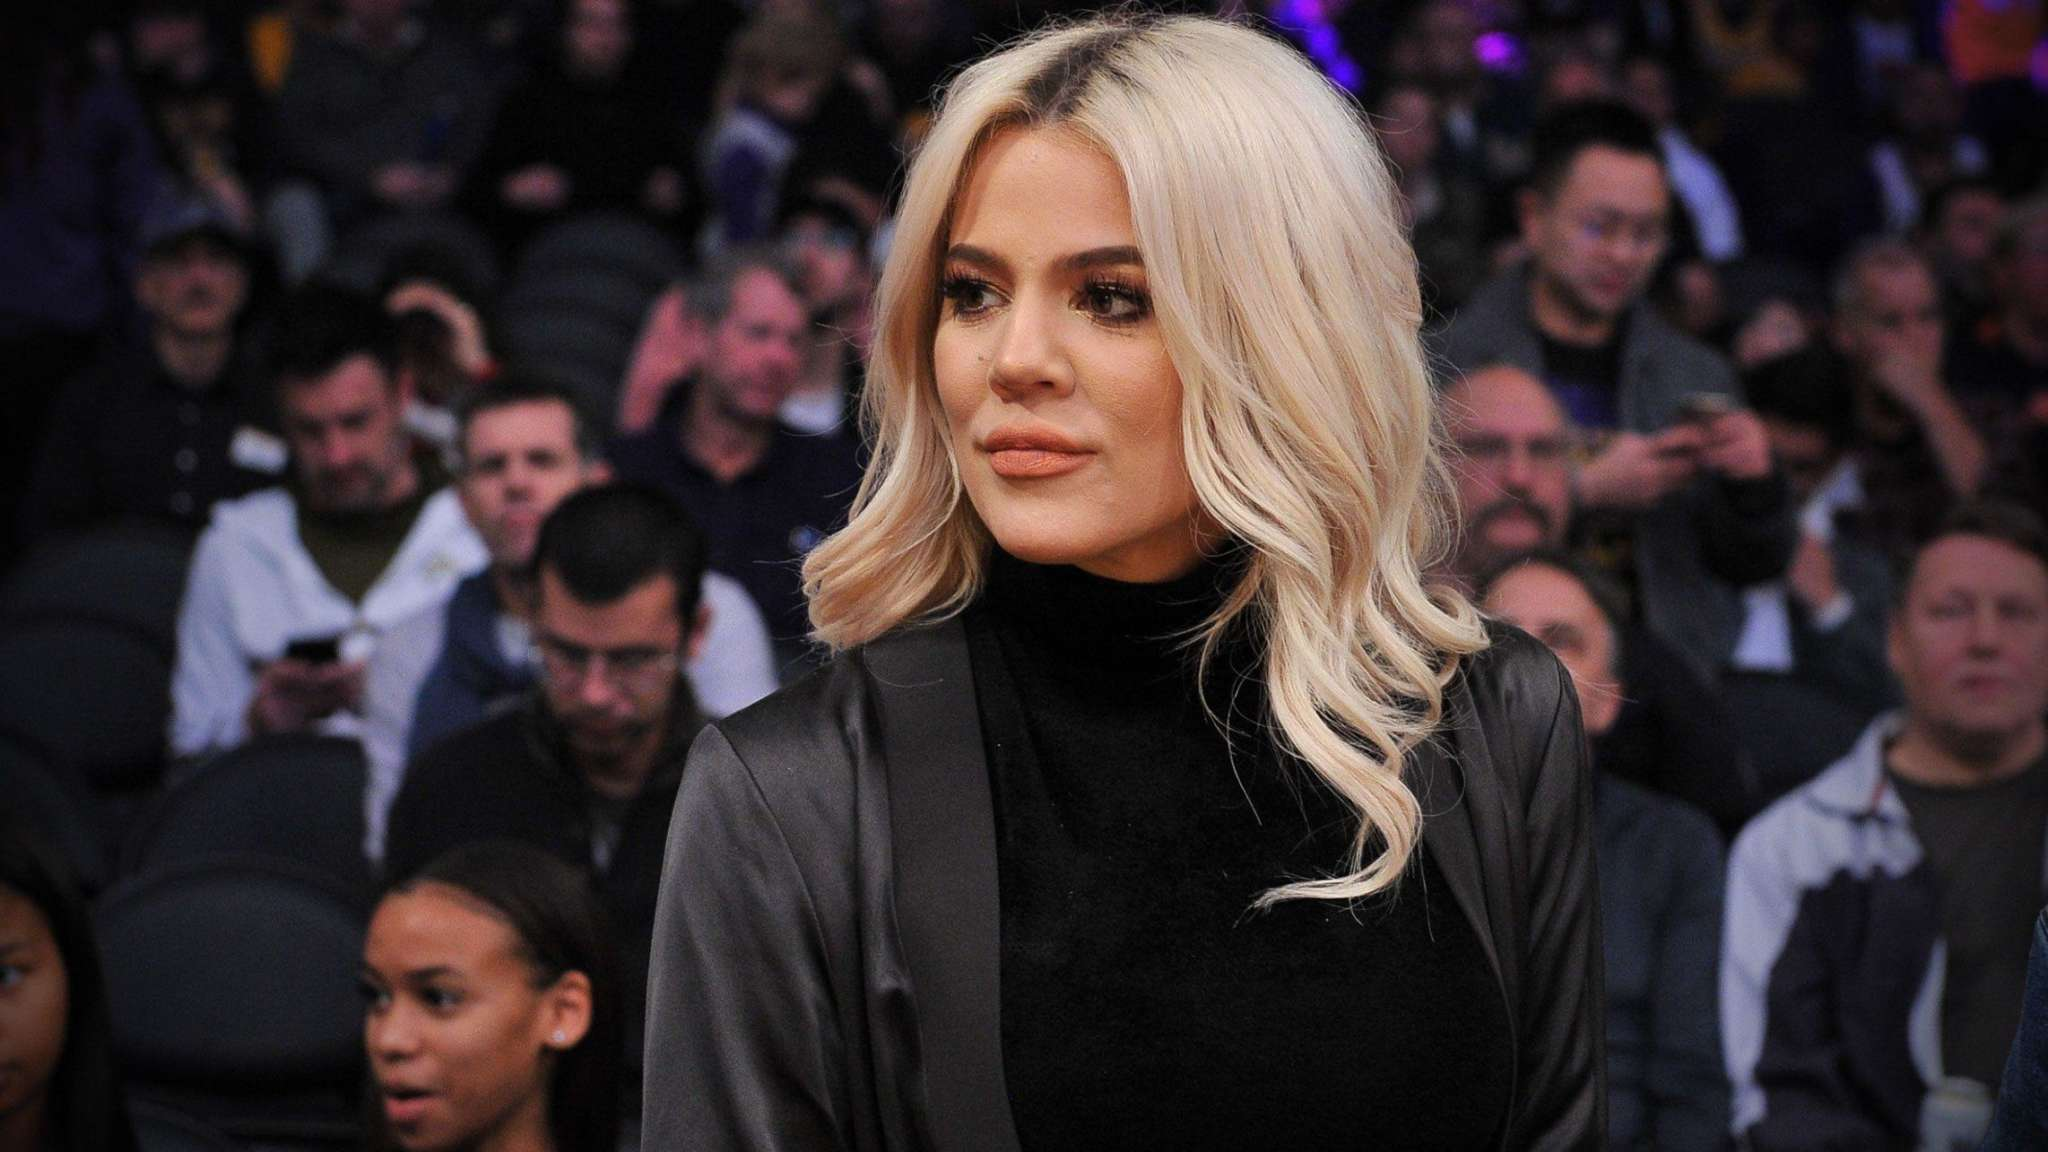 'KUWTK': Tristan Threatened To 'Kill Himself' After Cheating Scandal, Khloe Reveals